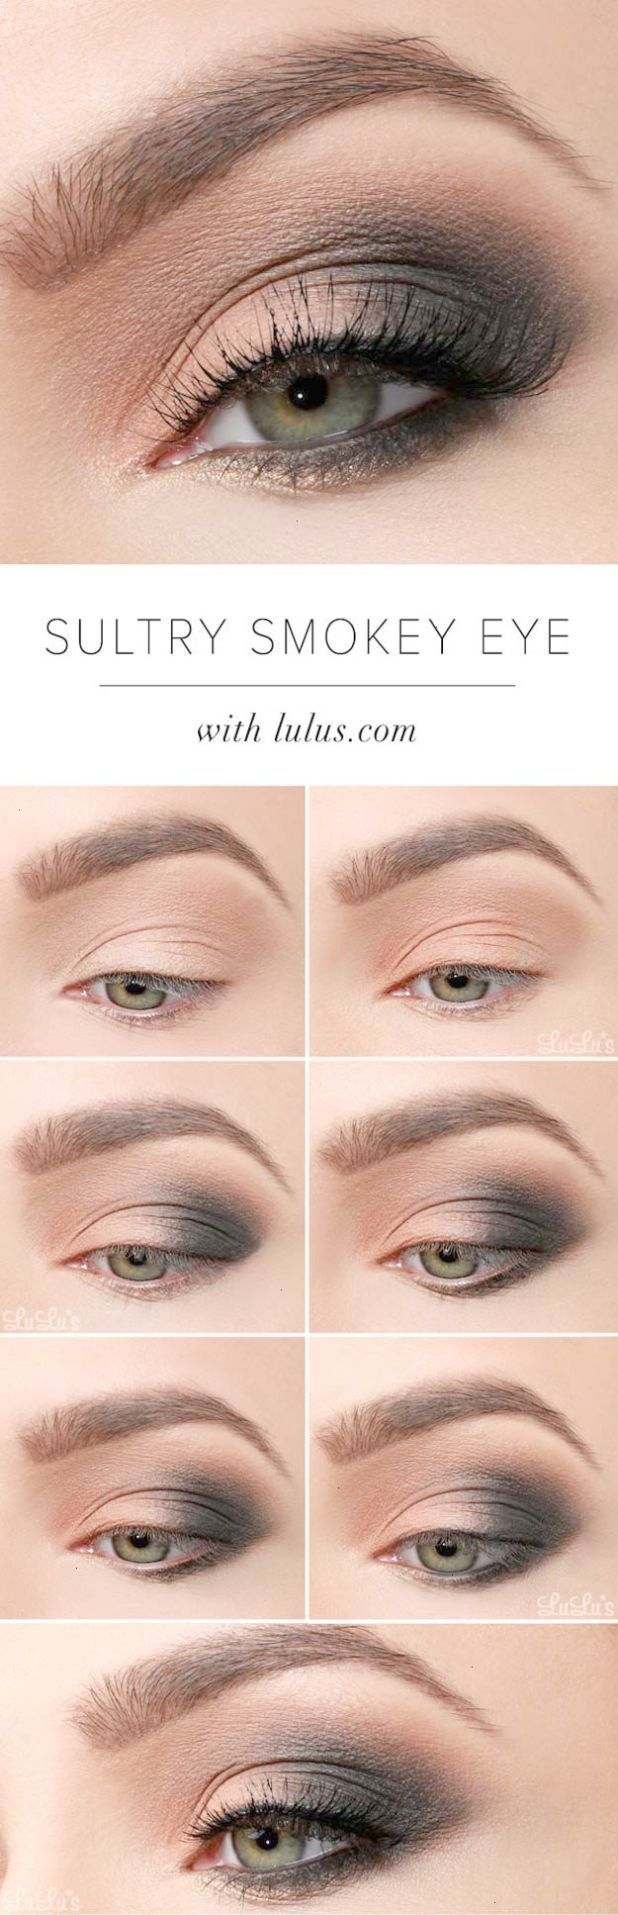 sexy eye makeup tutorials - sultry smokey eye makeup tutorial - easy